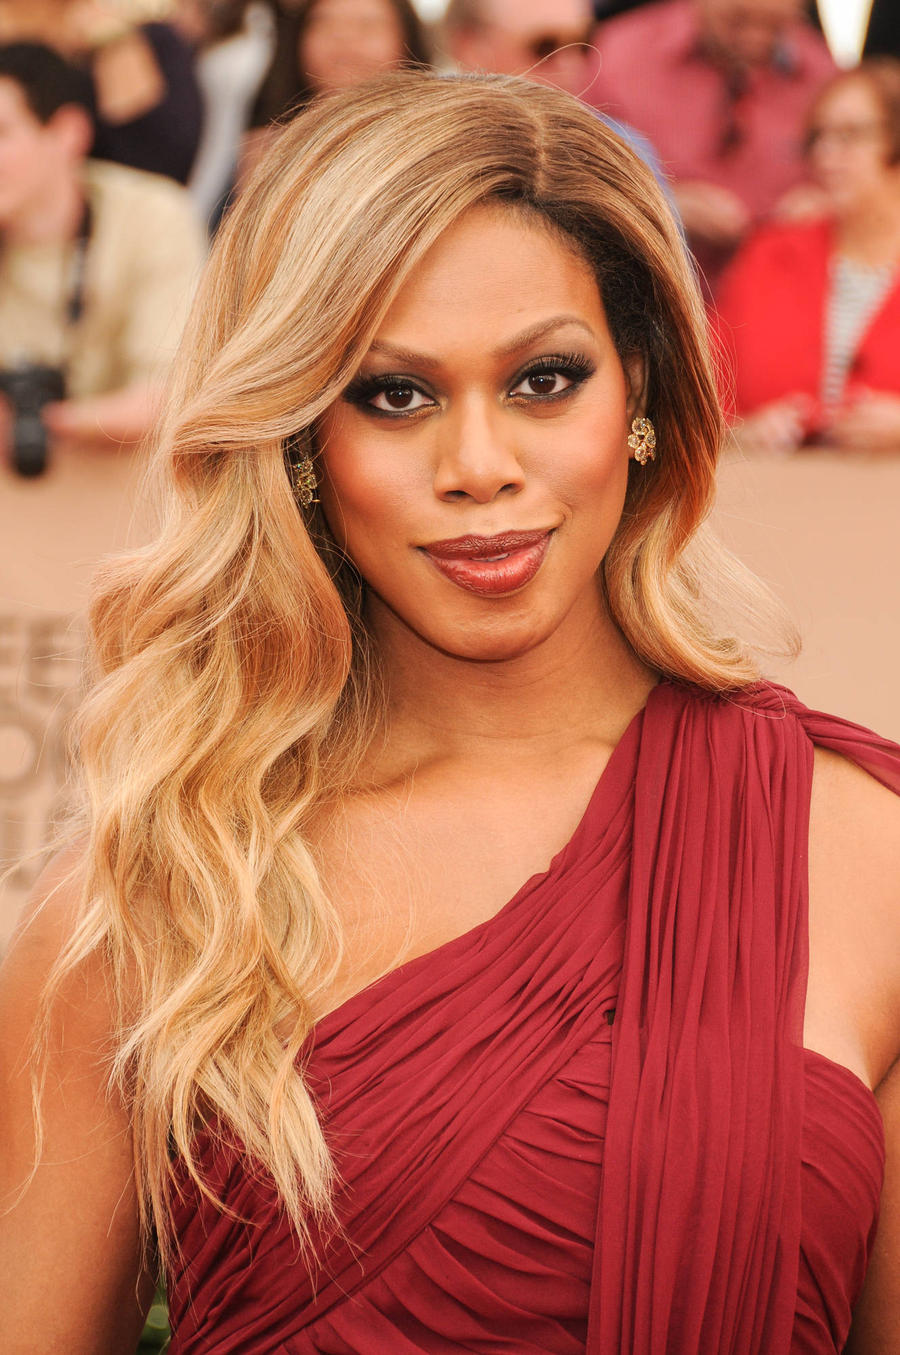 Laverne Cox Dating Film Executive Jono Freedrix - Report